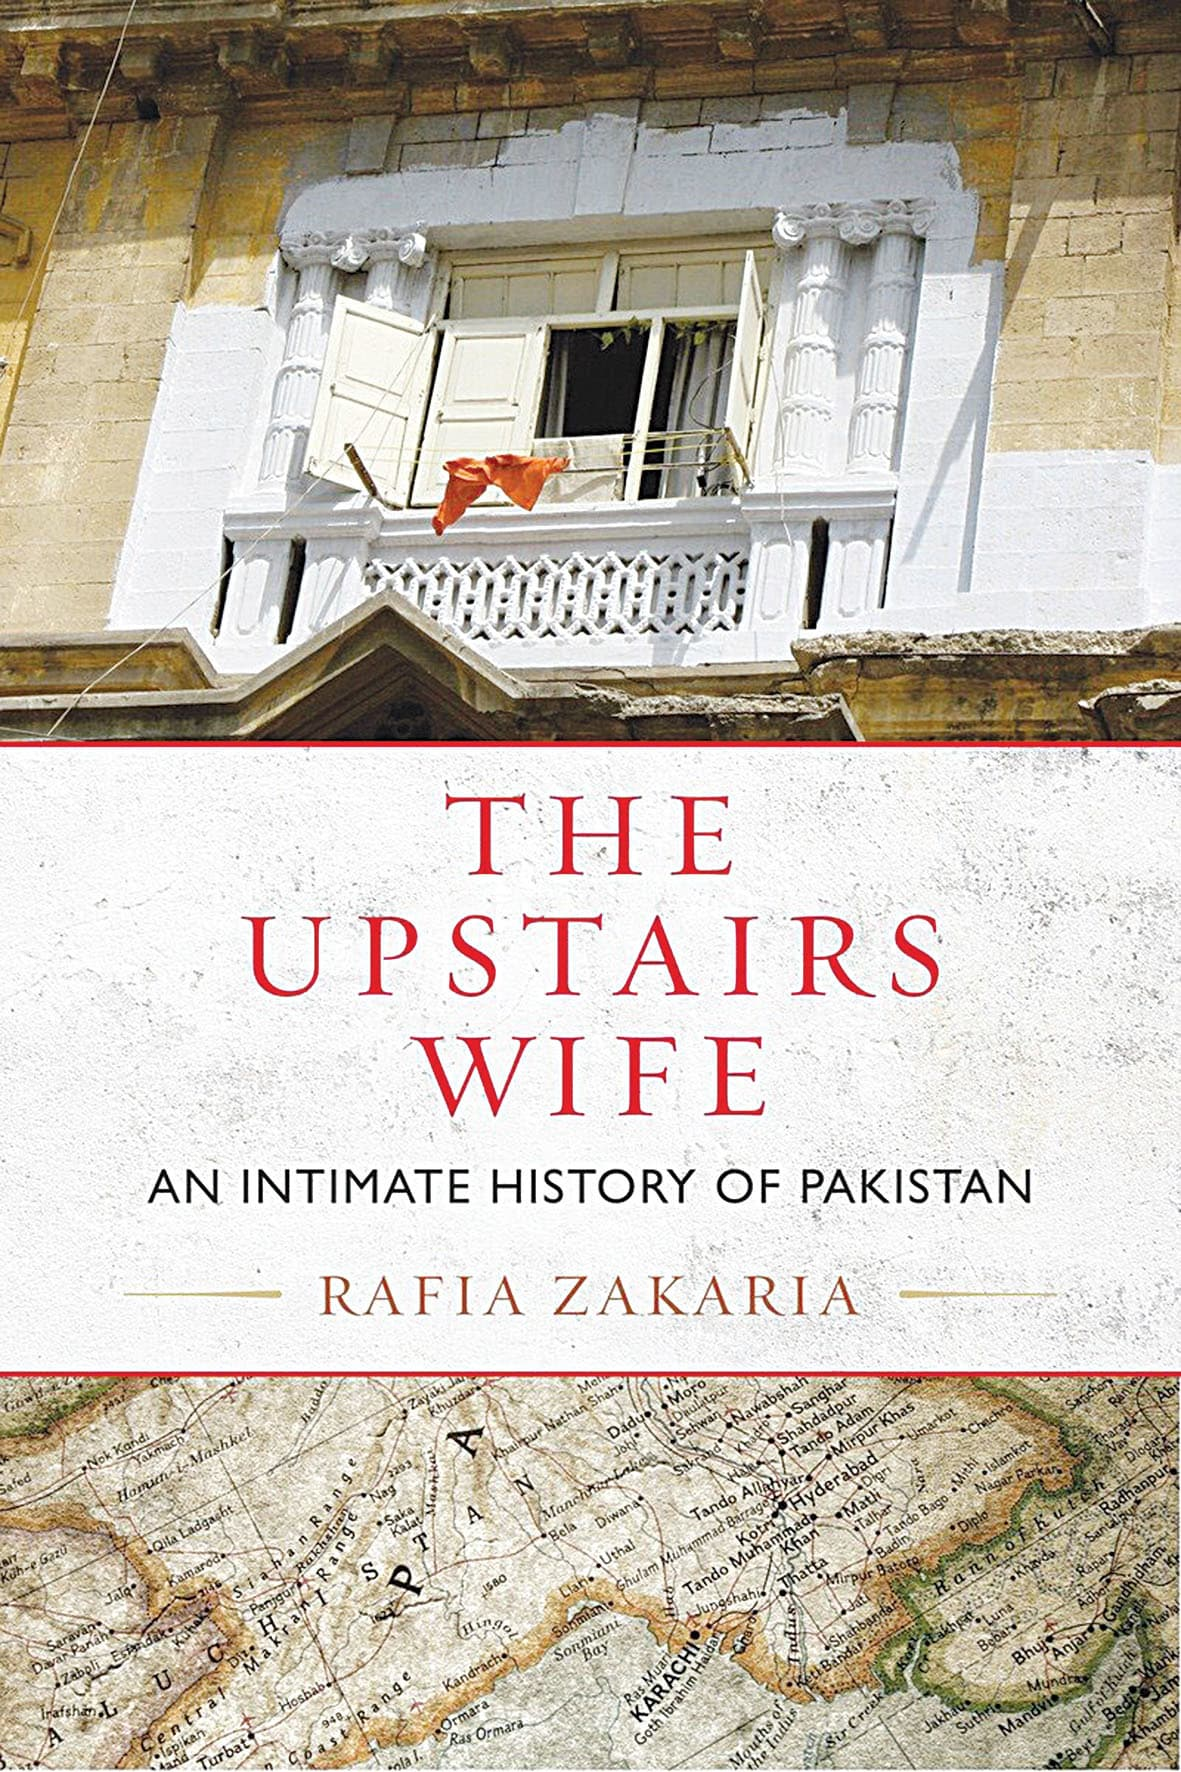 The Upstairs Wife: An Intimate History of Pakistan   By Rafia Zakaria